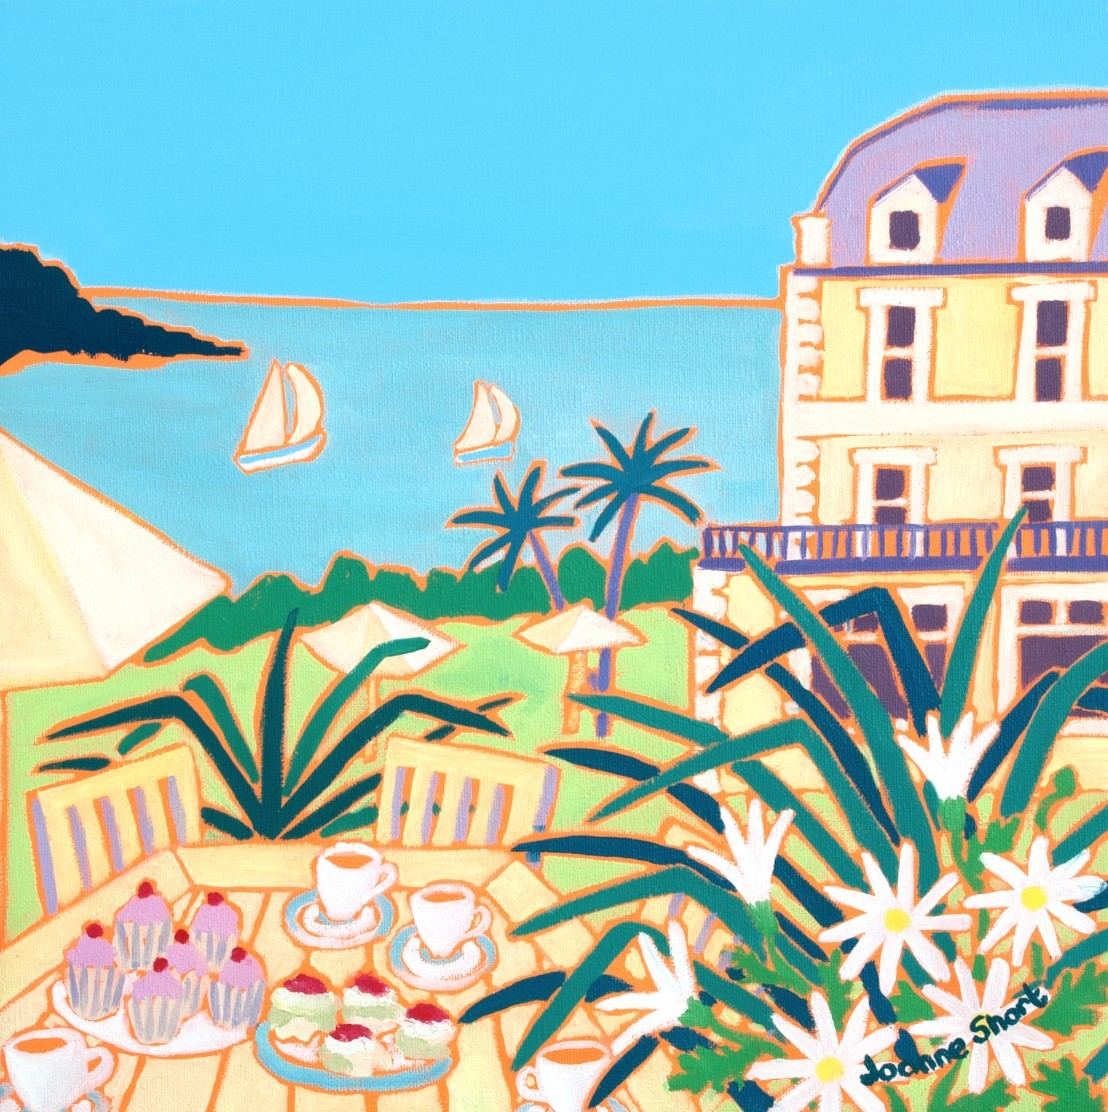 Afternoon Tea at the Hotel, Fowey. Limited Edition Print by Joanne Short